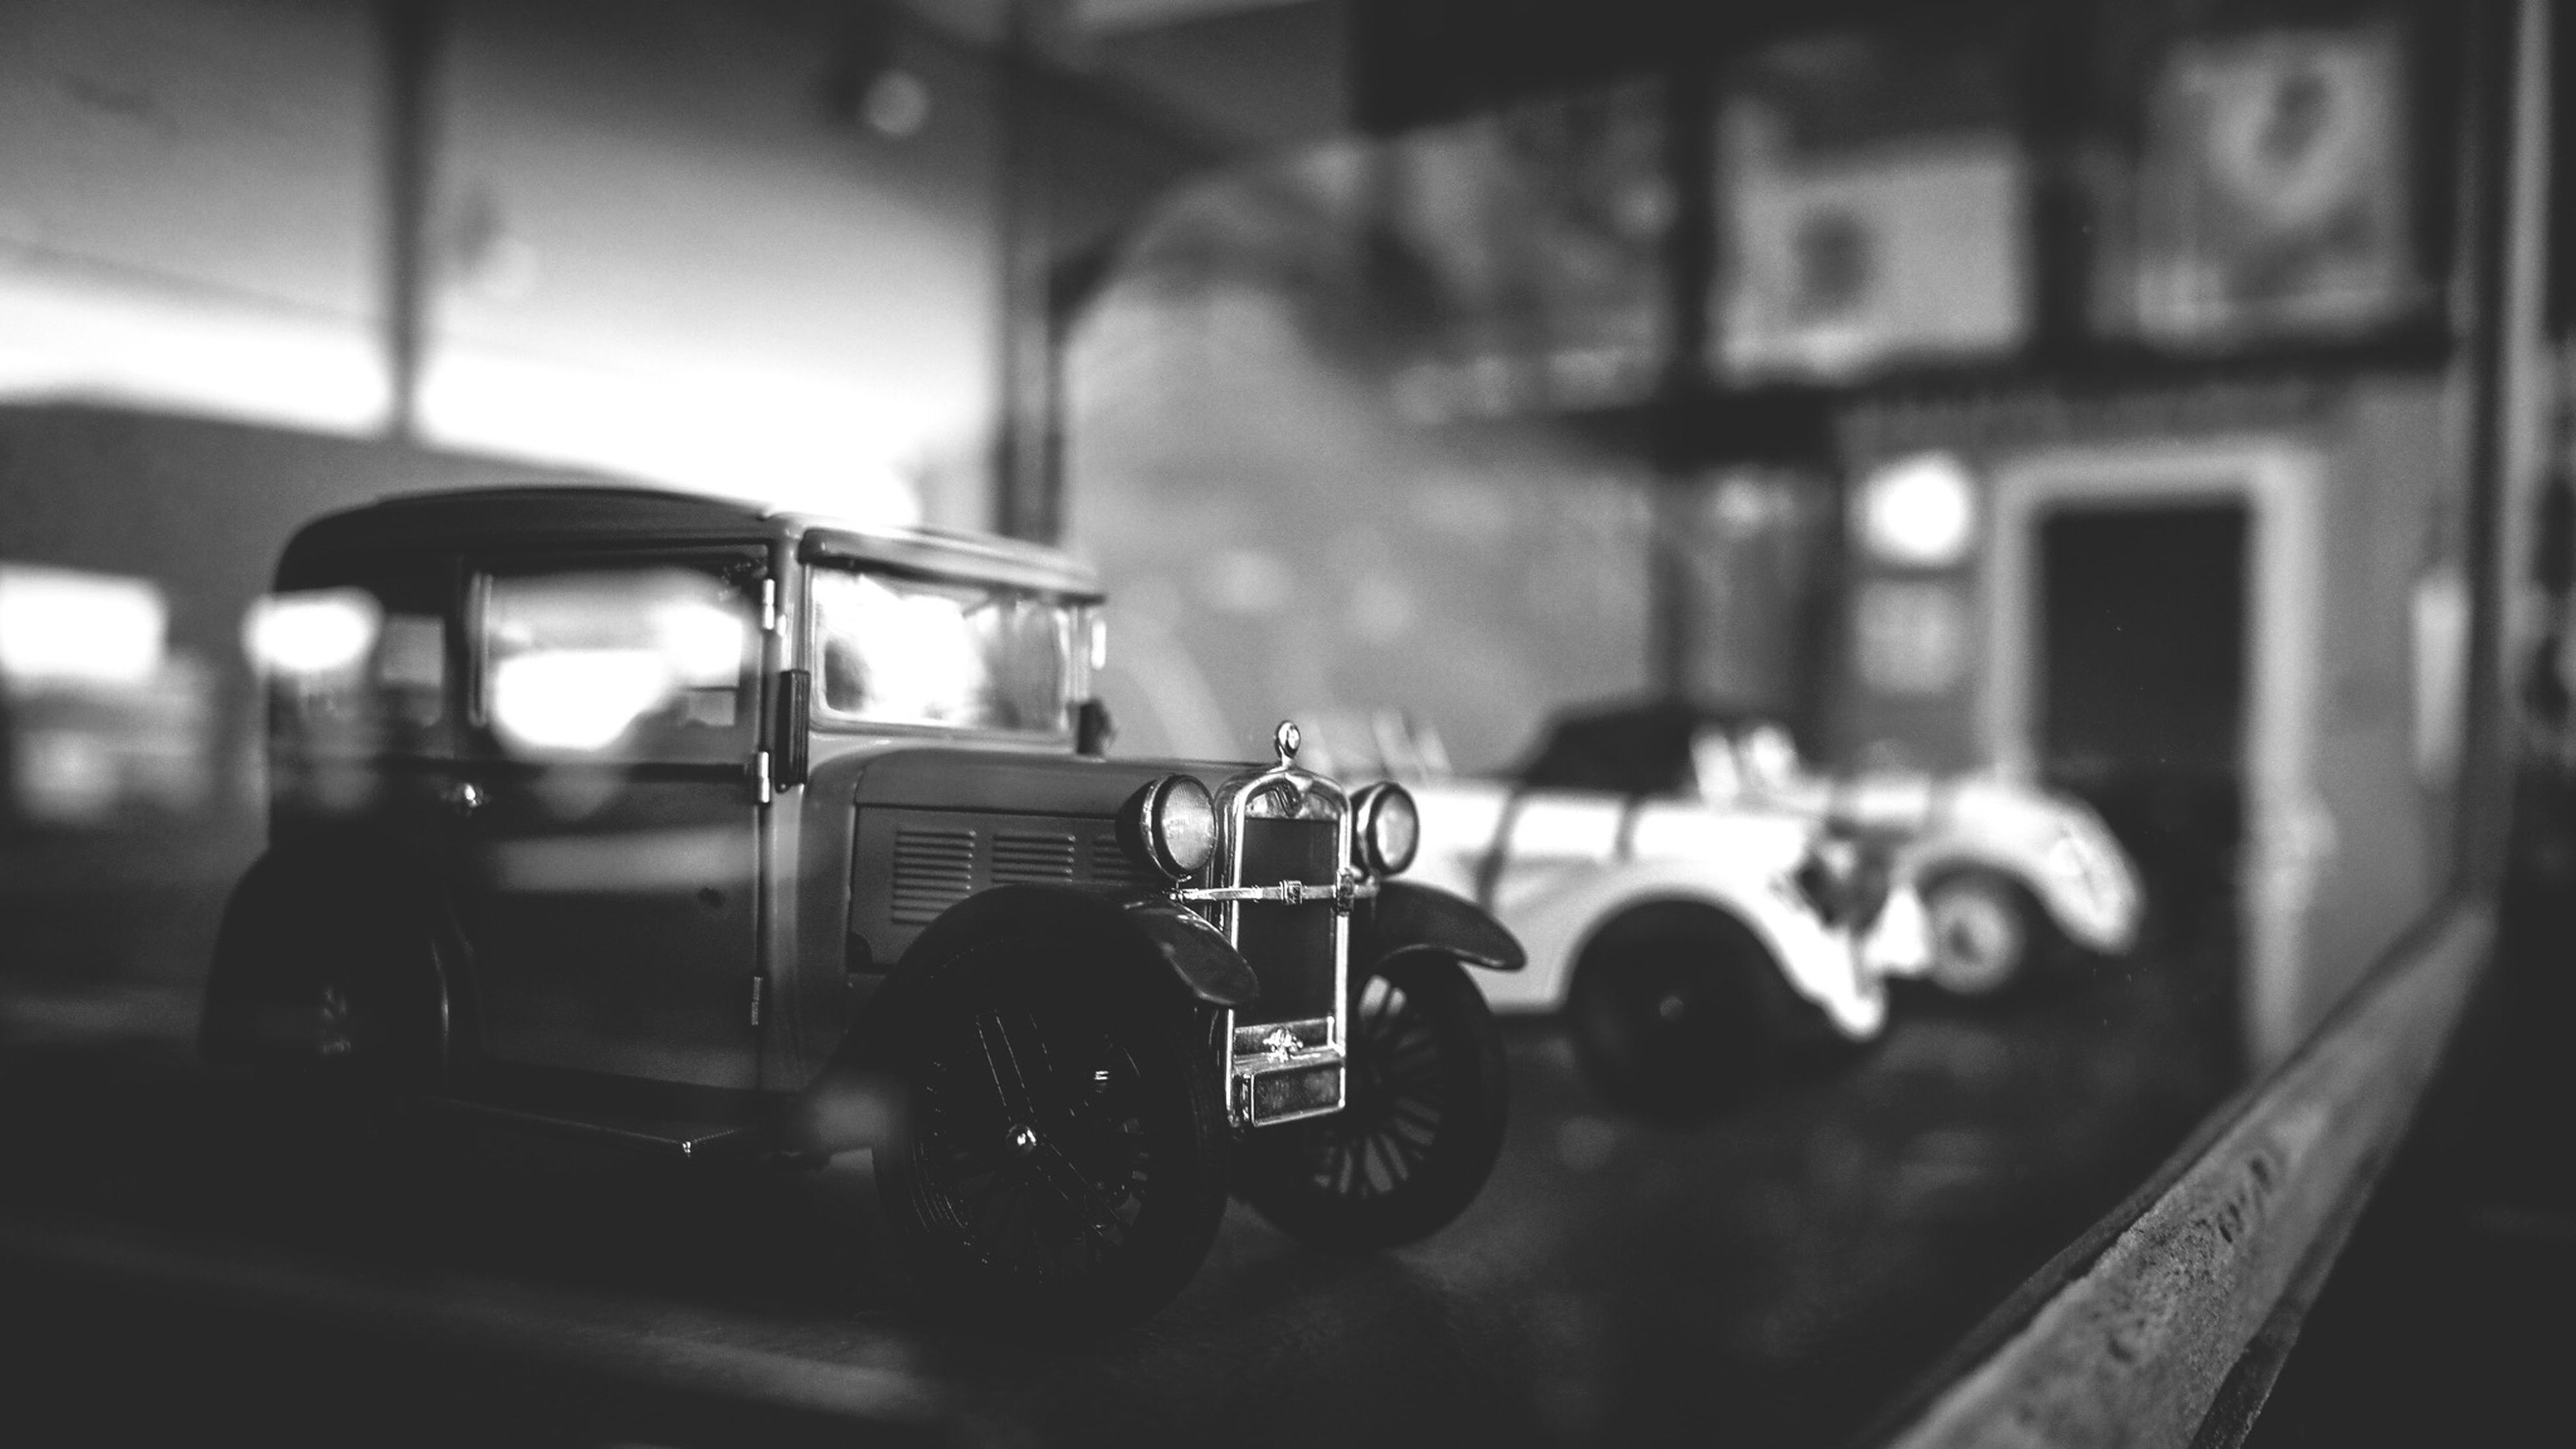 transportation, land vehicle, mode of transport, focus on foreground, window, car, glass - material, indoors, transparent, close-up, building exterior, built structure, architecture, reflection, selective focus, no people, illuminated, stationary, technology, day